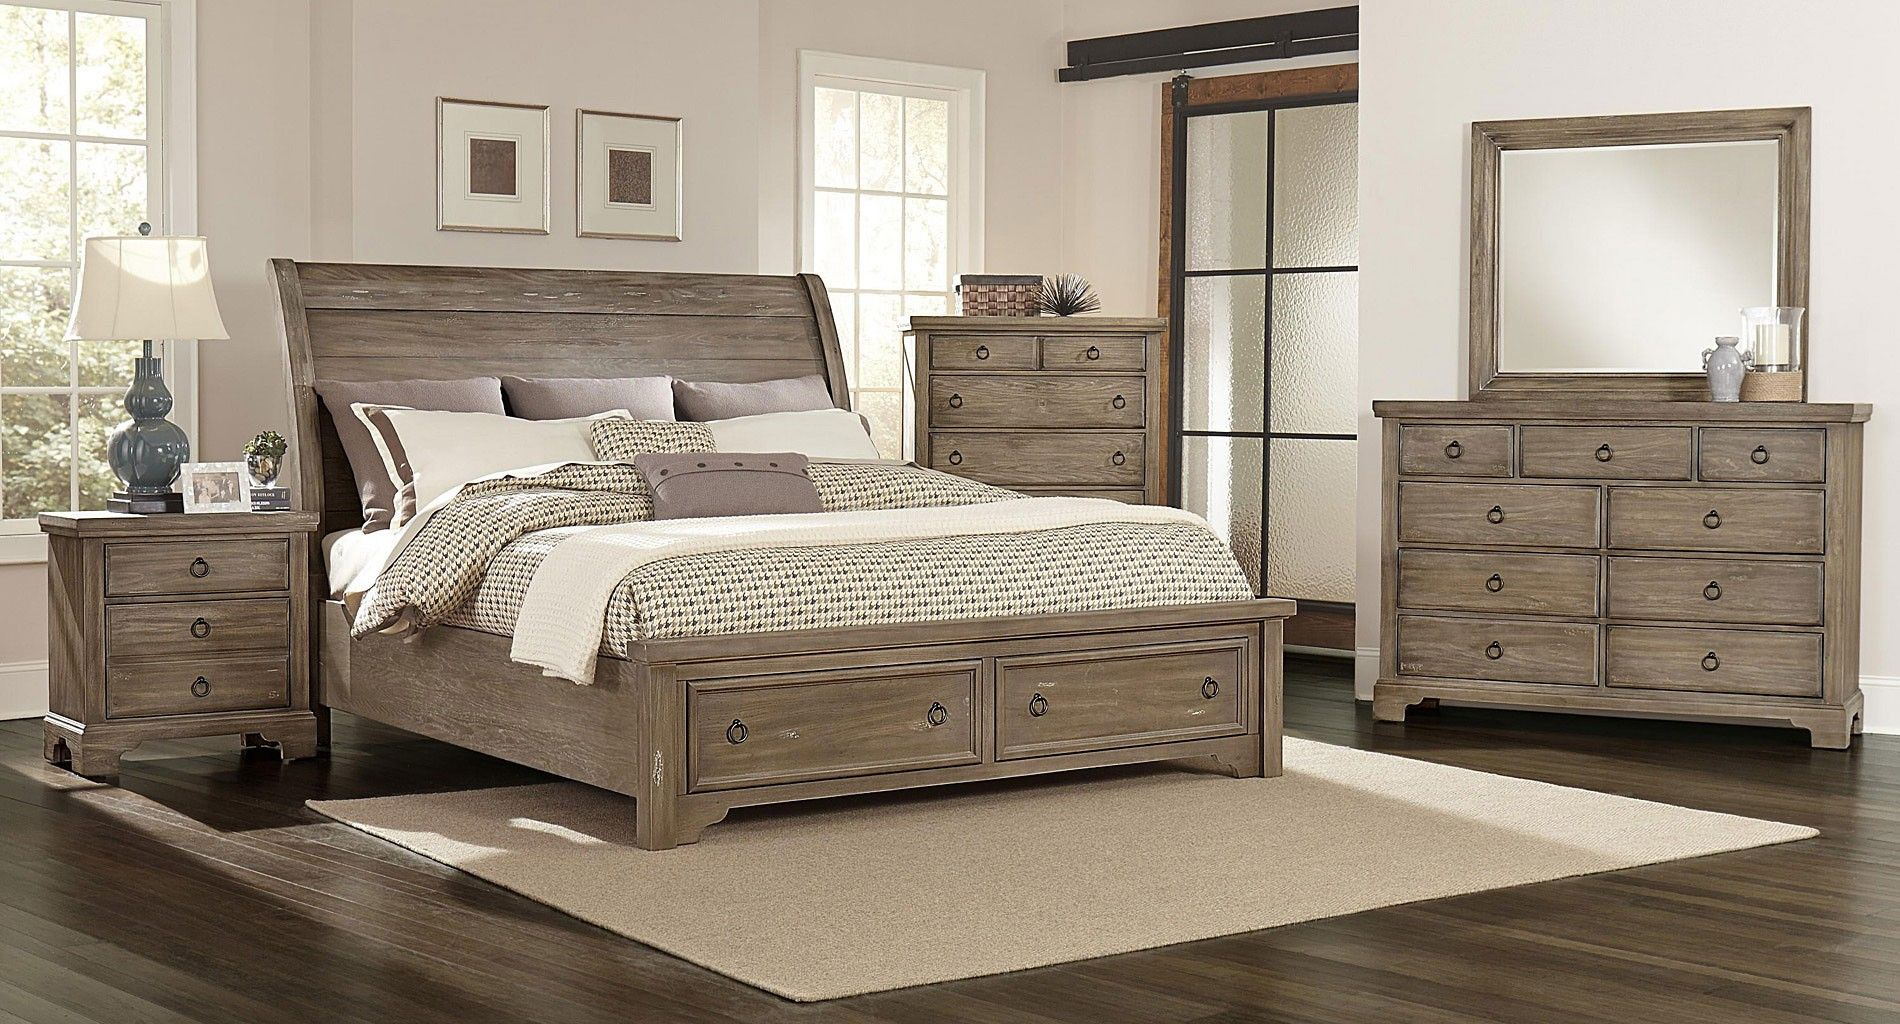 Whiskey Barrel Storage Bedroom Set Rustic Gray Rustic Grey